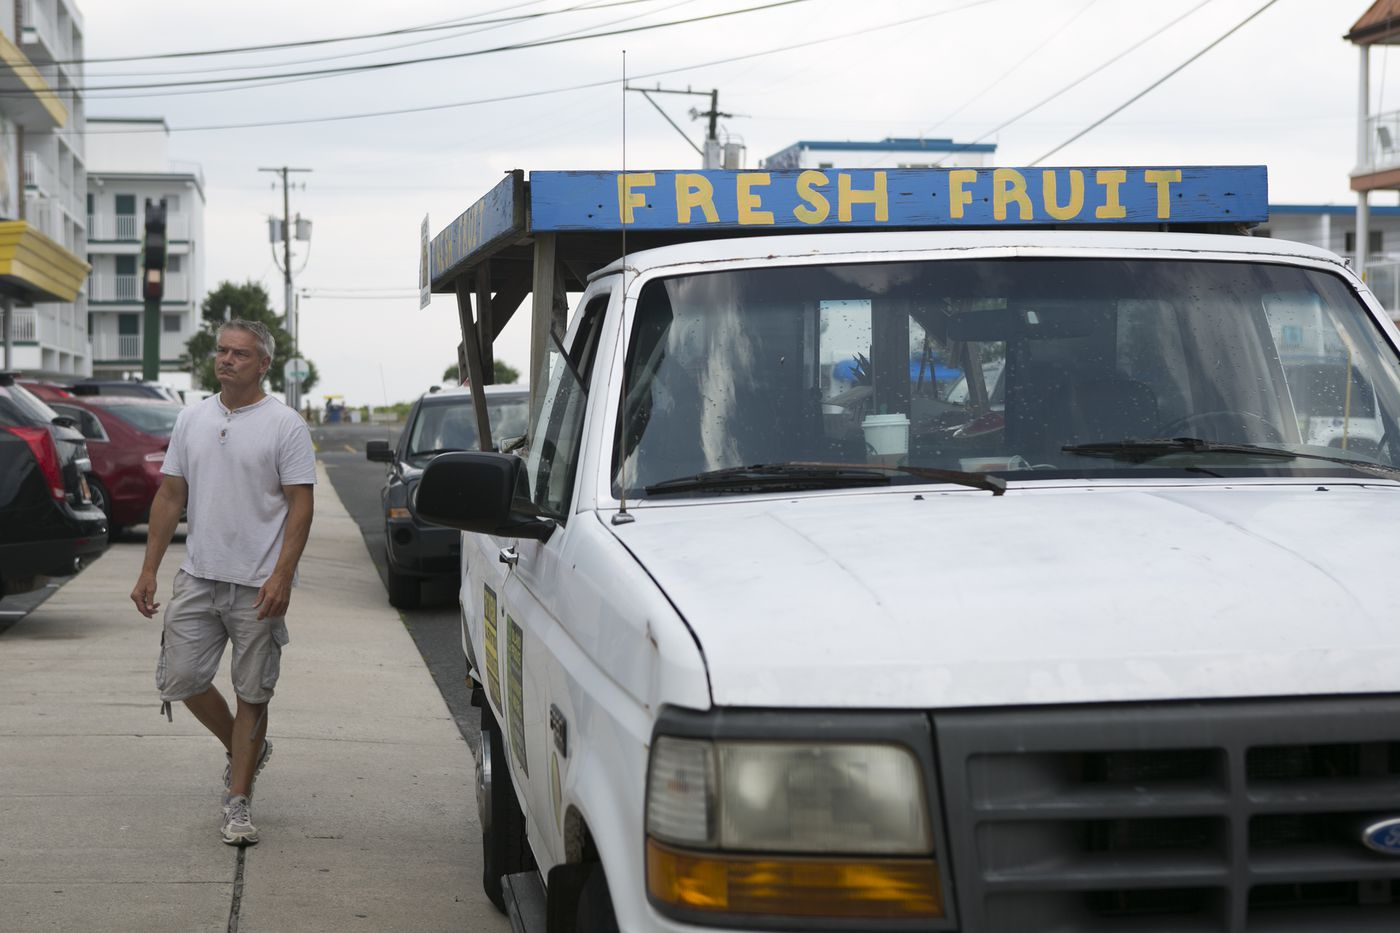 Slinging fresh fruit and veggies in the junk-food capital of the Jersey Shore